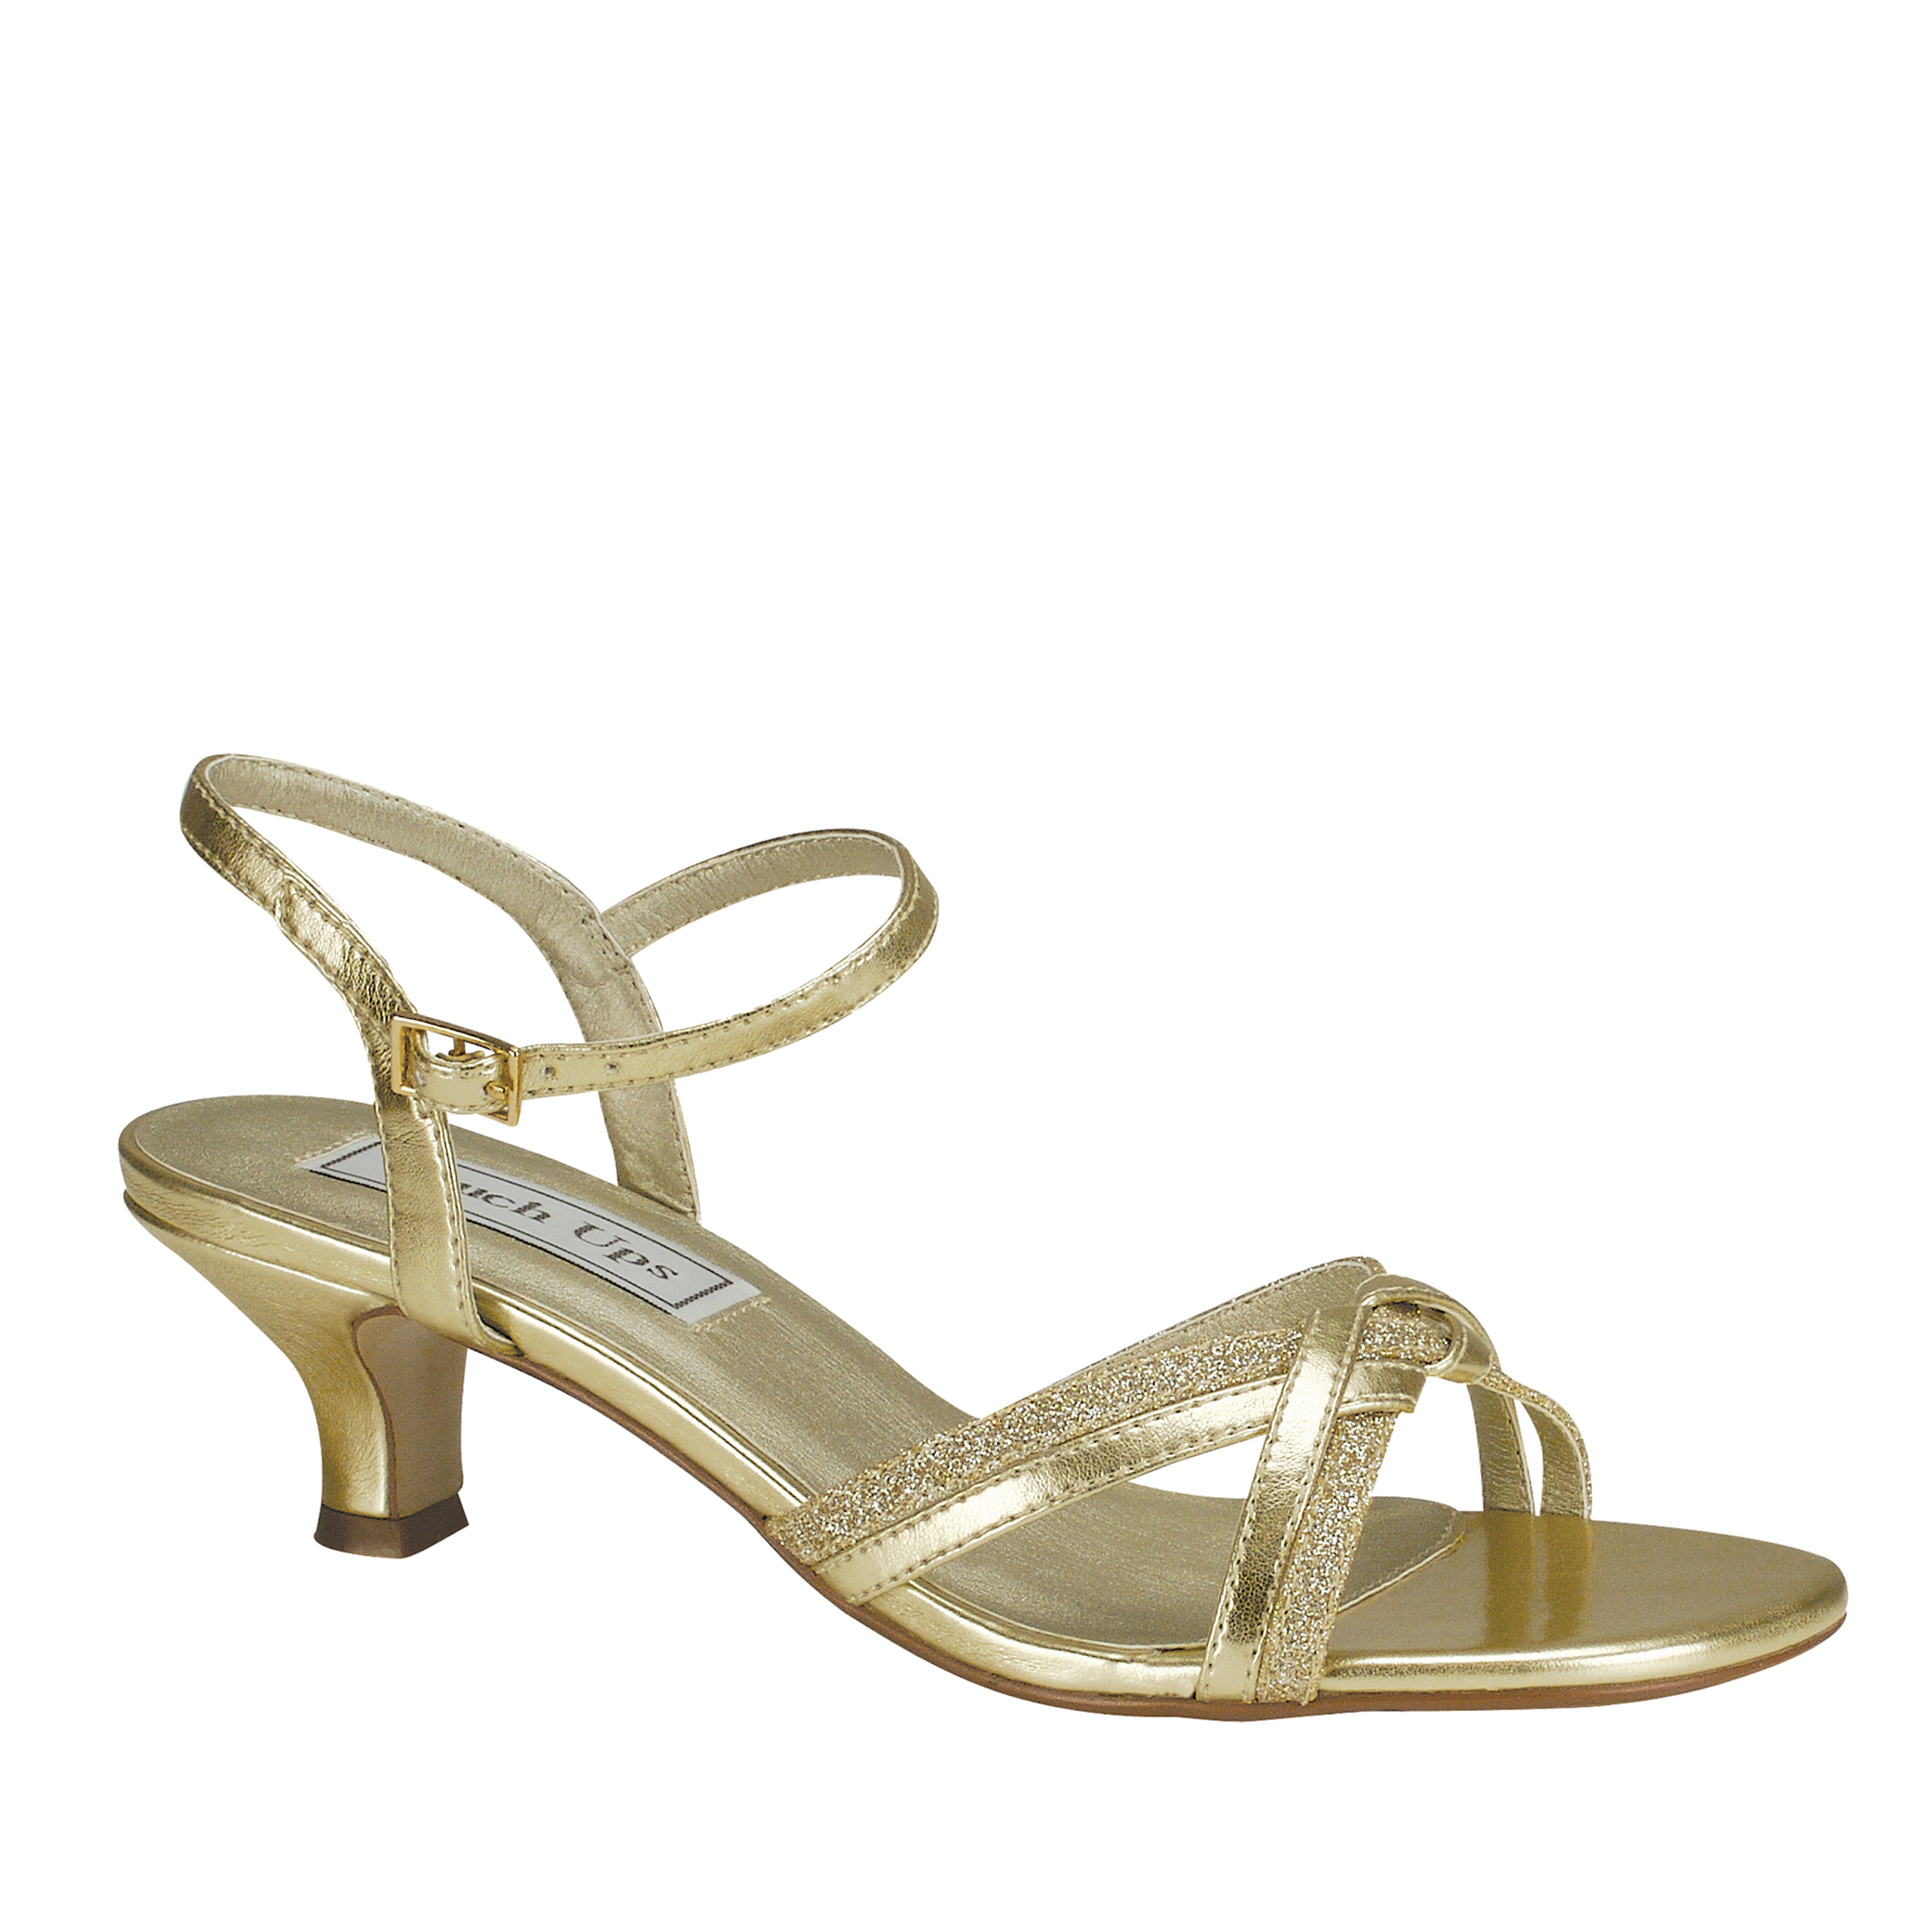 Touch Ups Melanie Womens Gold Sandals 10 M by